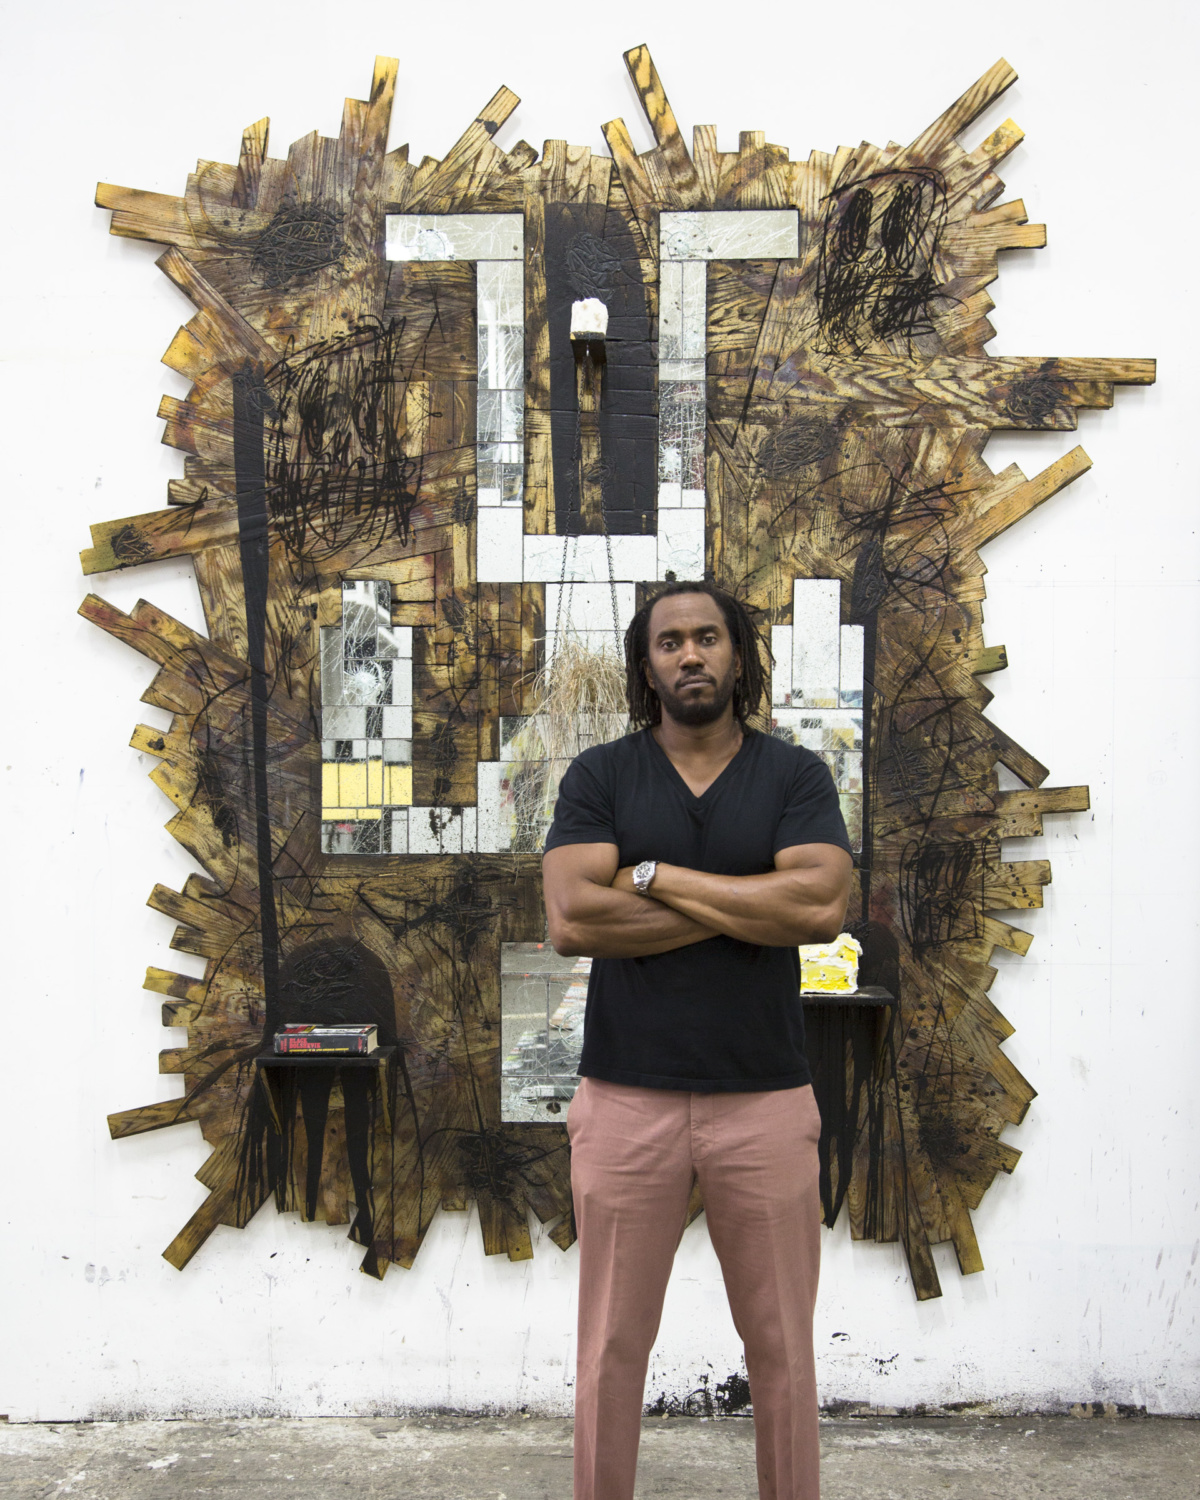 Rashid Johnson, photographed by Hank Willis Thomas